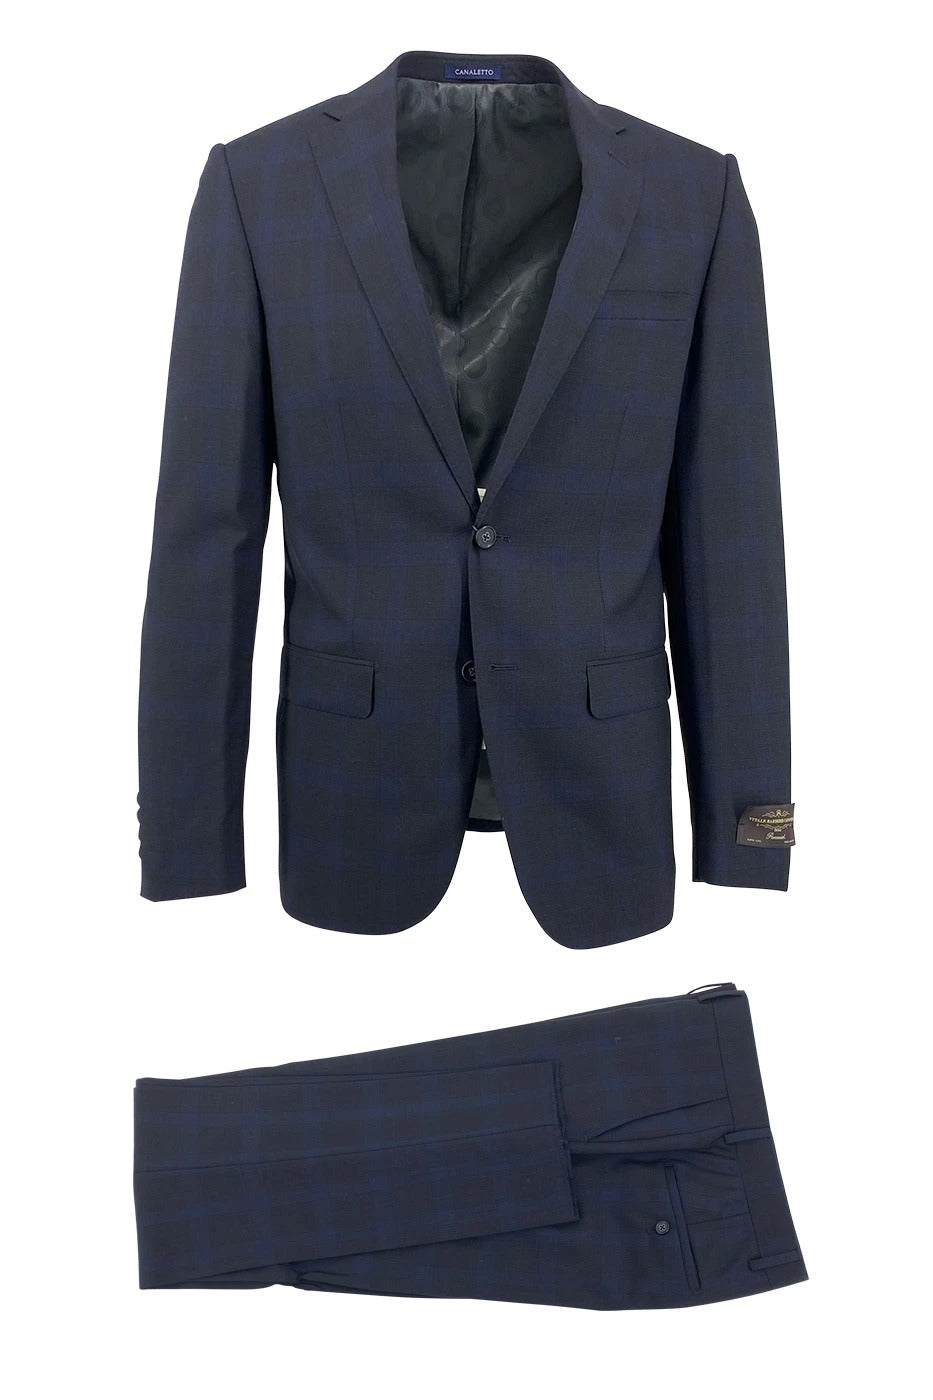 Canaletto Midnight Blue with Navy Windowpane Dolcetto Modern Fit Pure Wool Suit by Vitale Barberis Canonico Cloth CV2402362